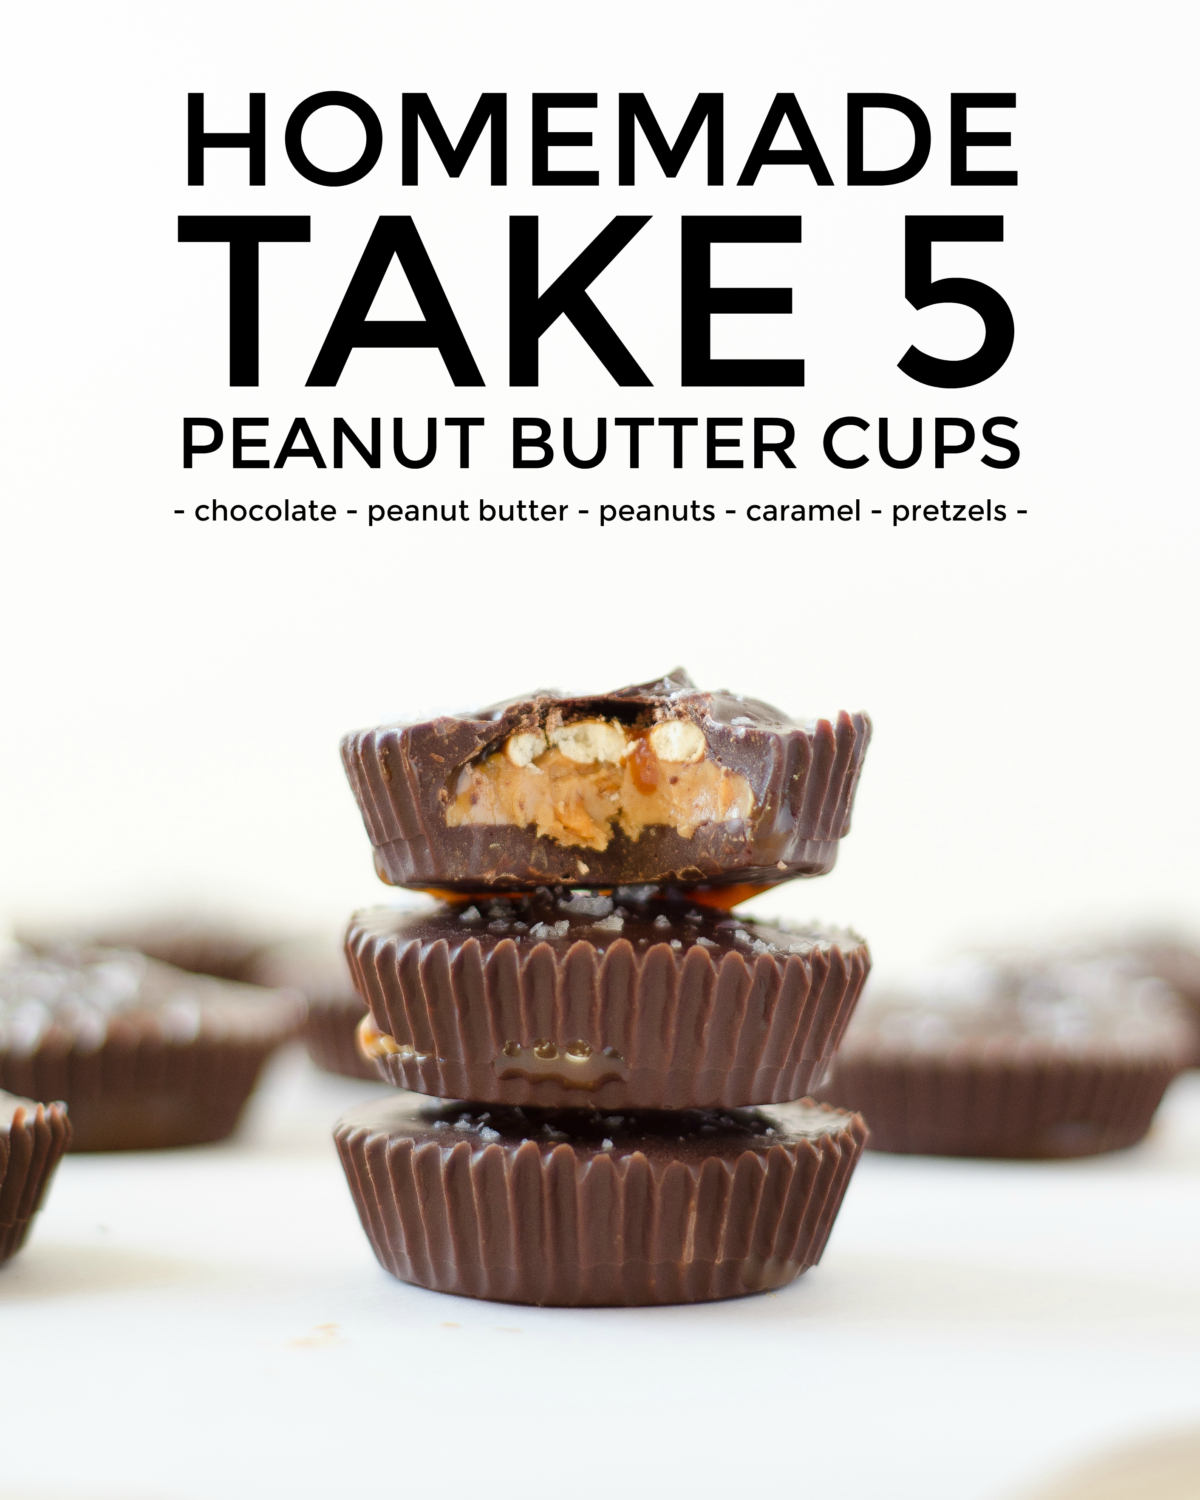 Recipe for the ultimate sweet and salty peanut butter cups filled with peanuts, peanut butter, caramel, and pretzels. A homemade Take 5 candy bar!